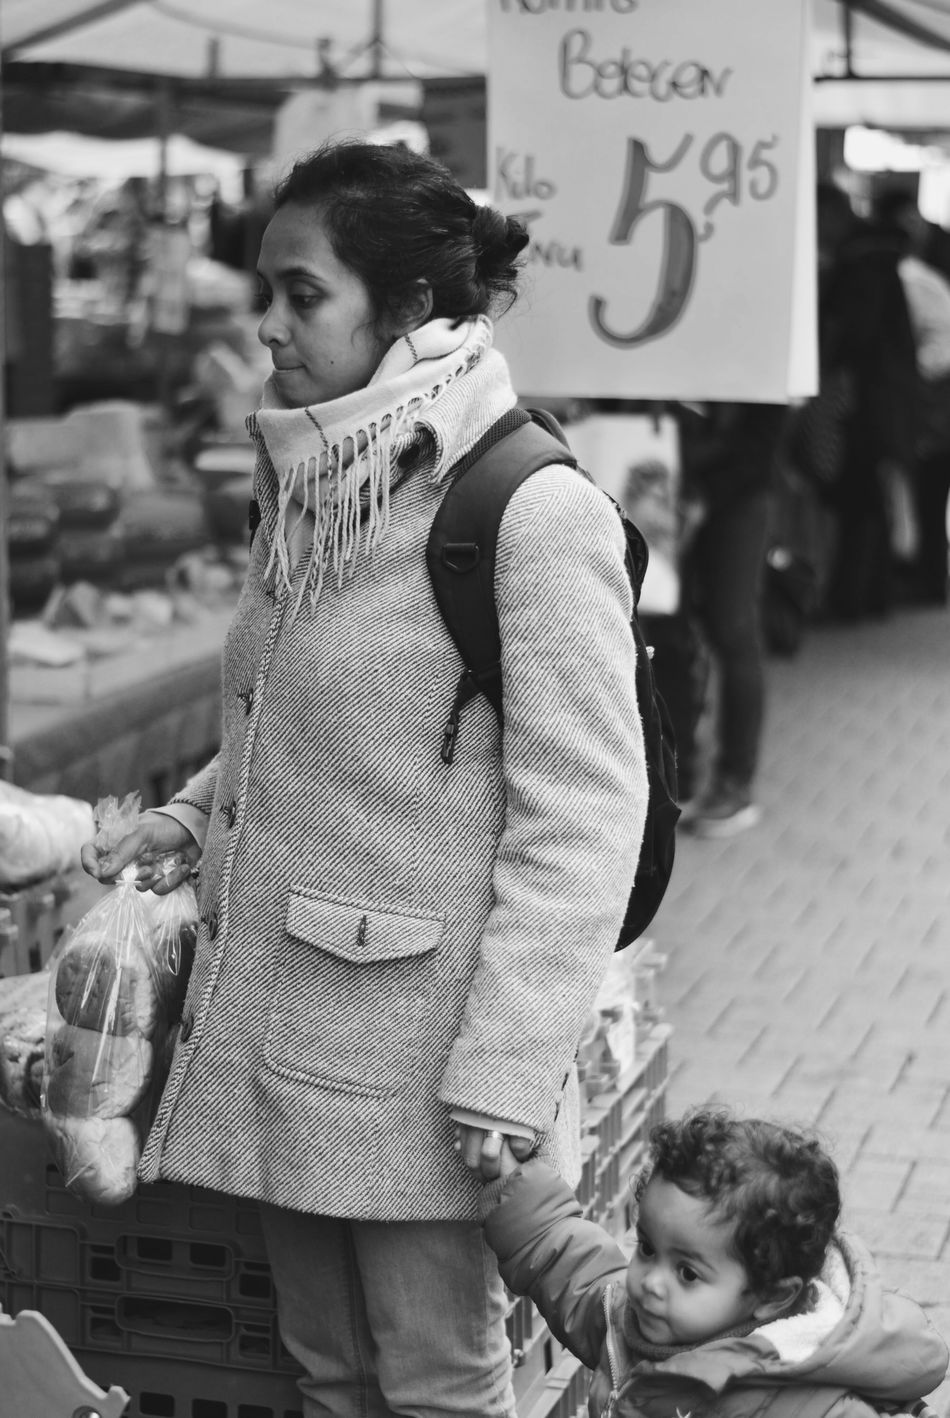 A woman in Amersfoort Casual Clothing Market Mom With Child Mom With Daughter Portrait Side View Street Street Photography Street Portrait Streetphoto_bw Streetphotography Woman Staring Young Adult